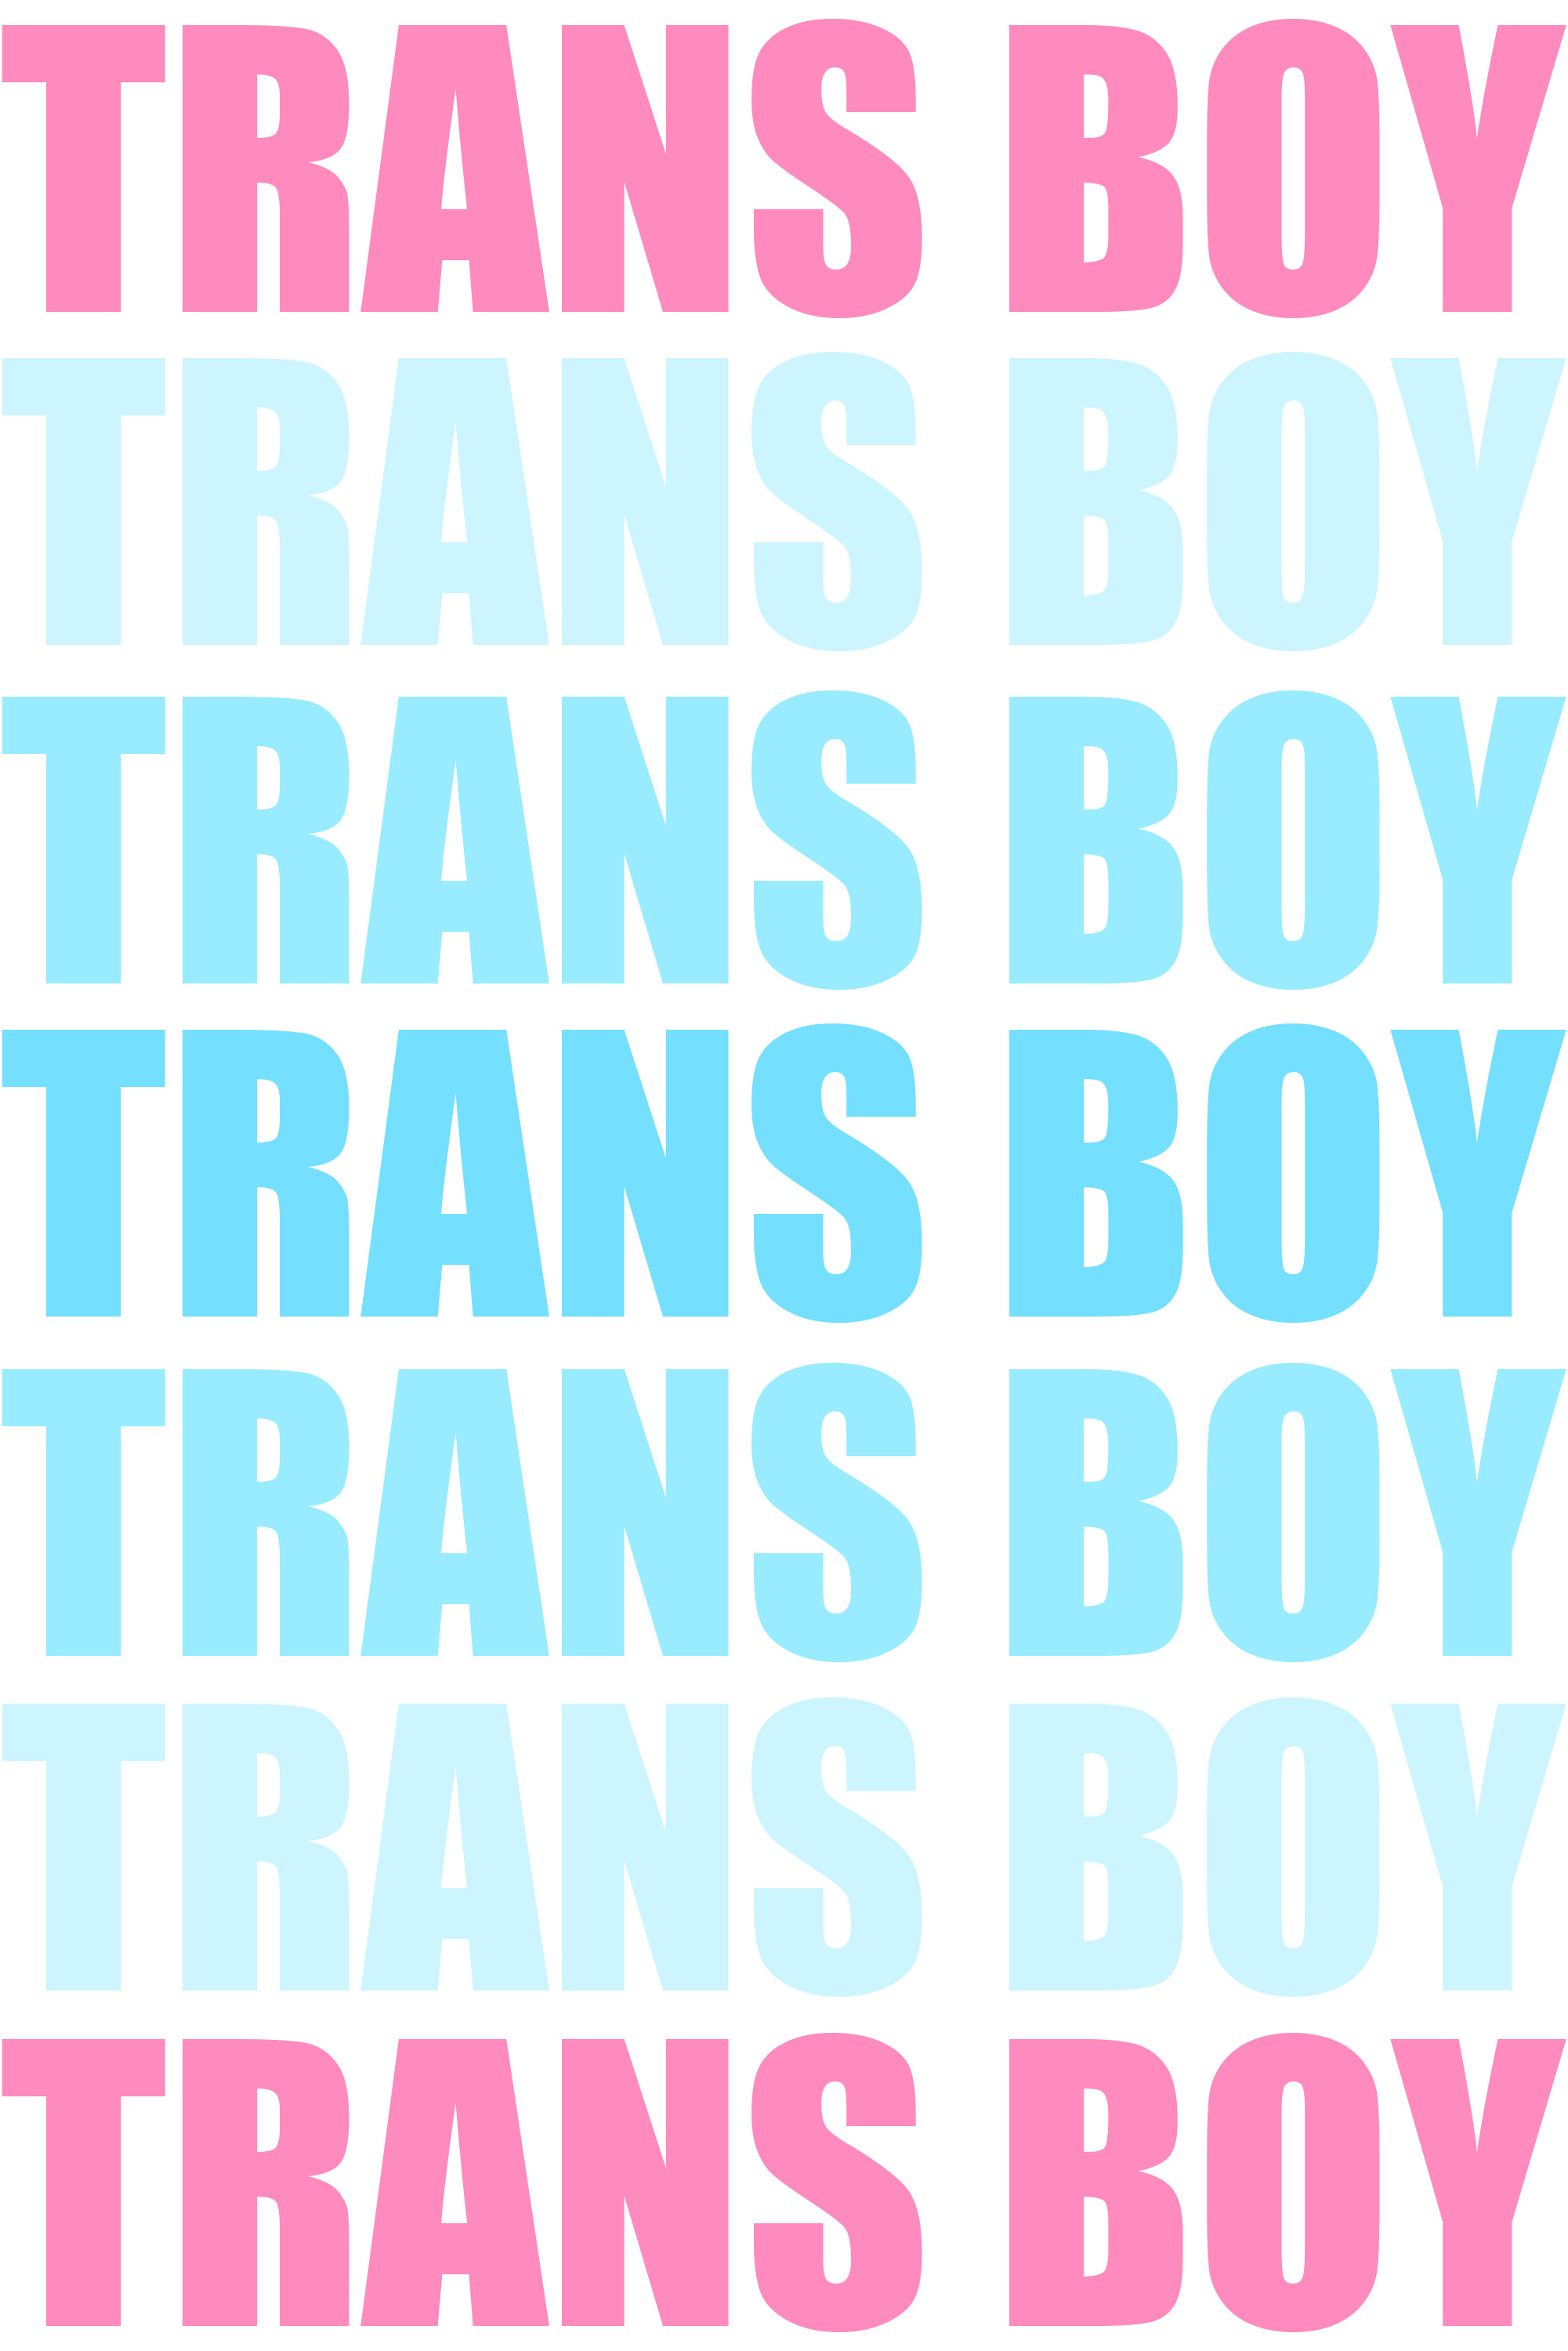 … Trans Boy Typography by Pride-Flags